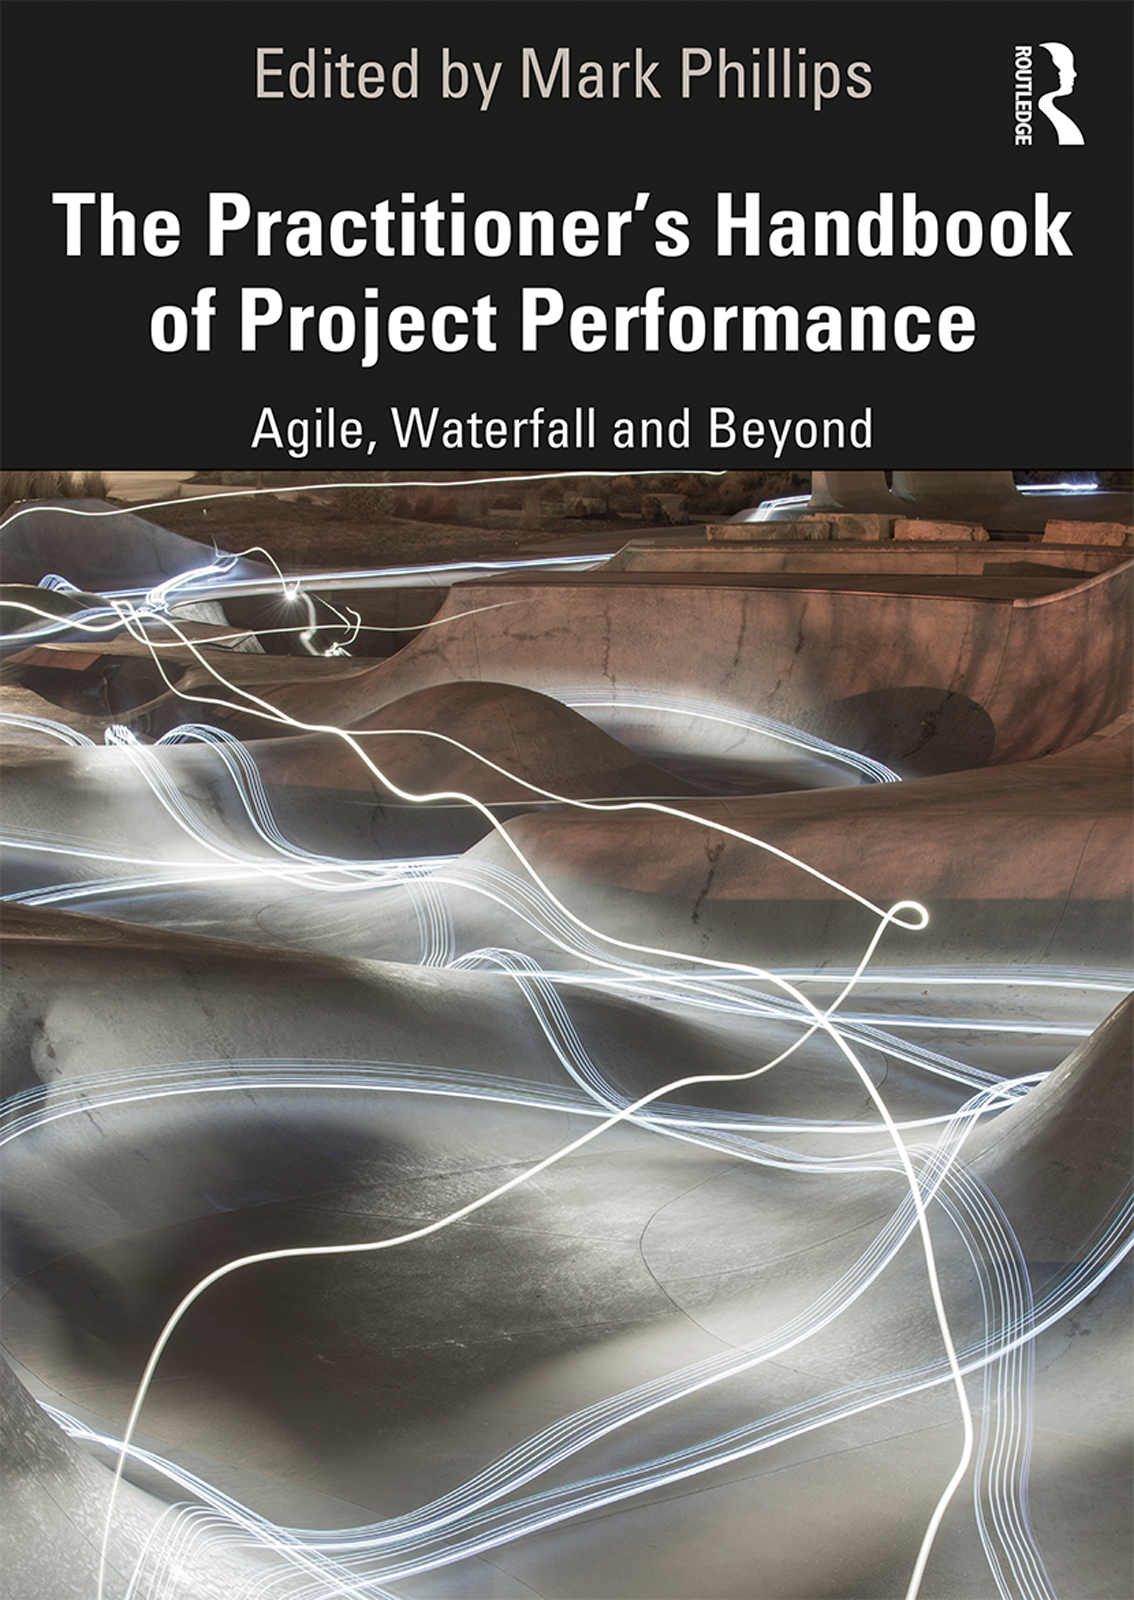 The Practitioner's Handbook of Project Performance: Agile, Waterfall and Beyond book cover